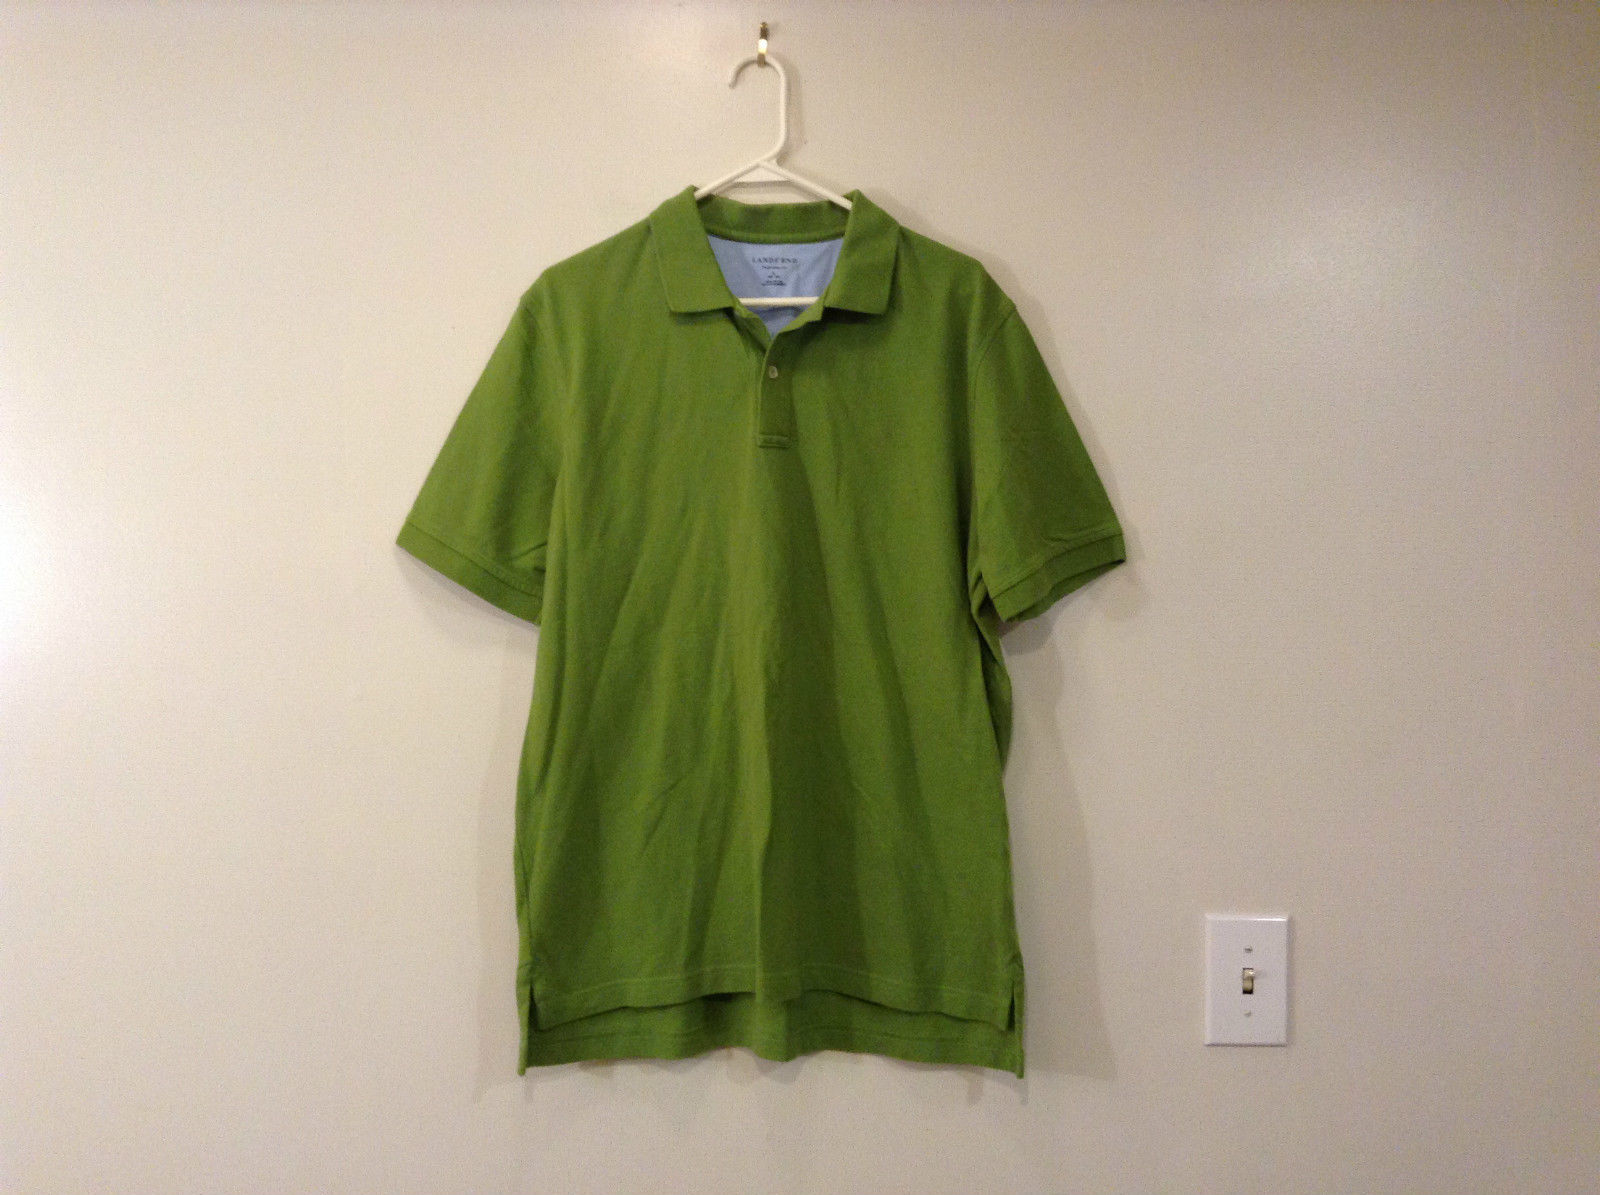 Green 100 Percent Cotton Lands End Polo Shirt Size L 42 to 44 Short Sleeves